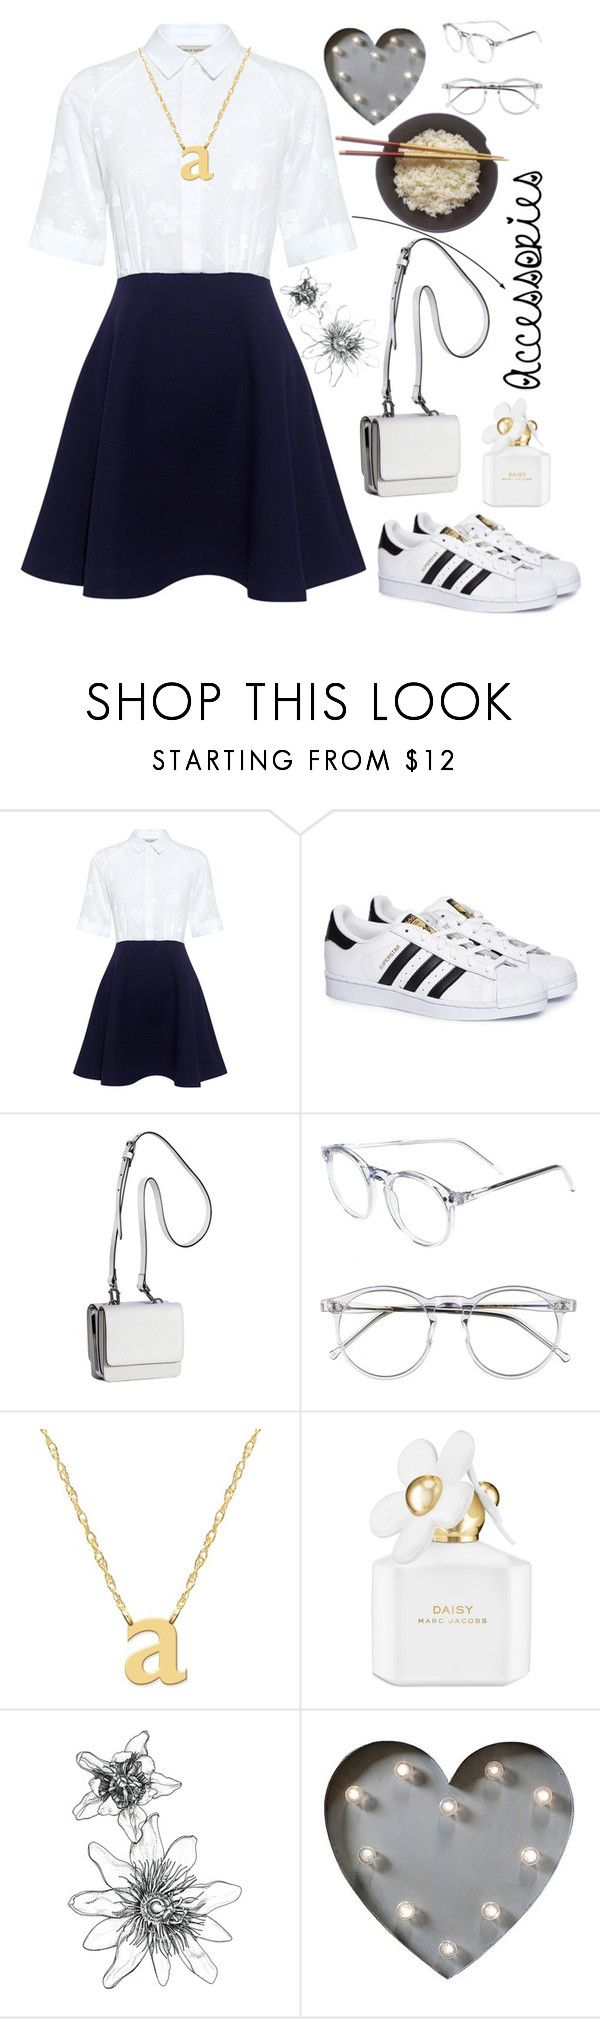 """""""I'm."""" by ali-0 ❤ liked on Polyvore featuring Paul & Joe Sister, adidas, Kendall + Kylie, Wildfox, Jane Basch, Marc Jacobs and Creative Co-op"""